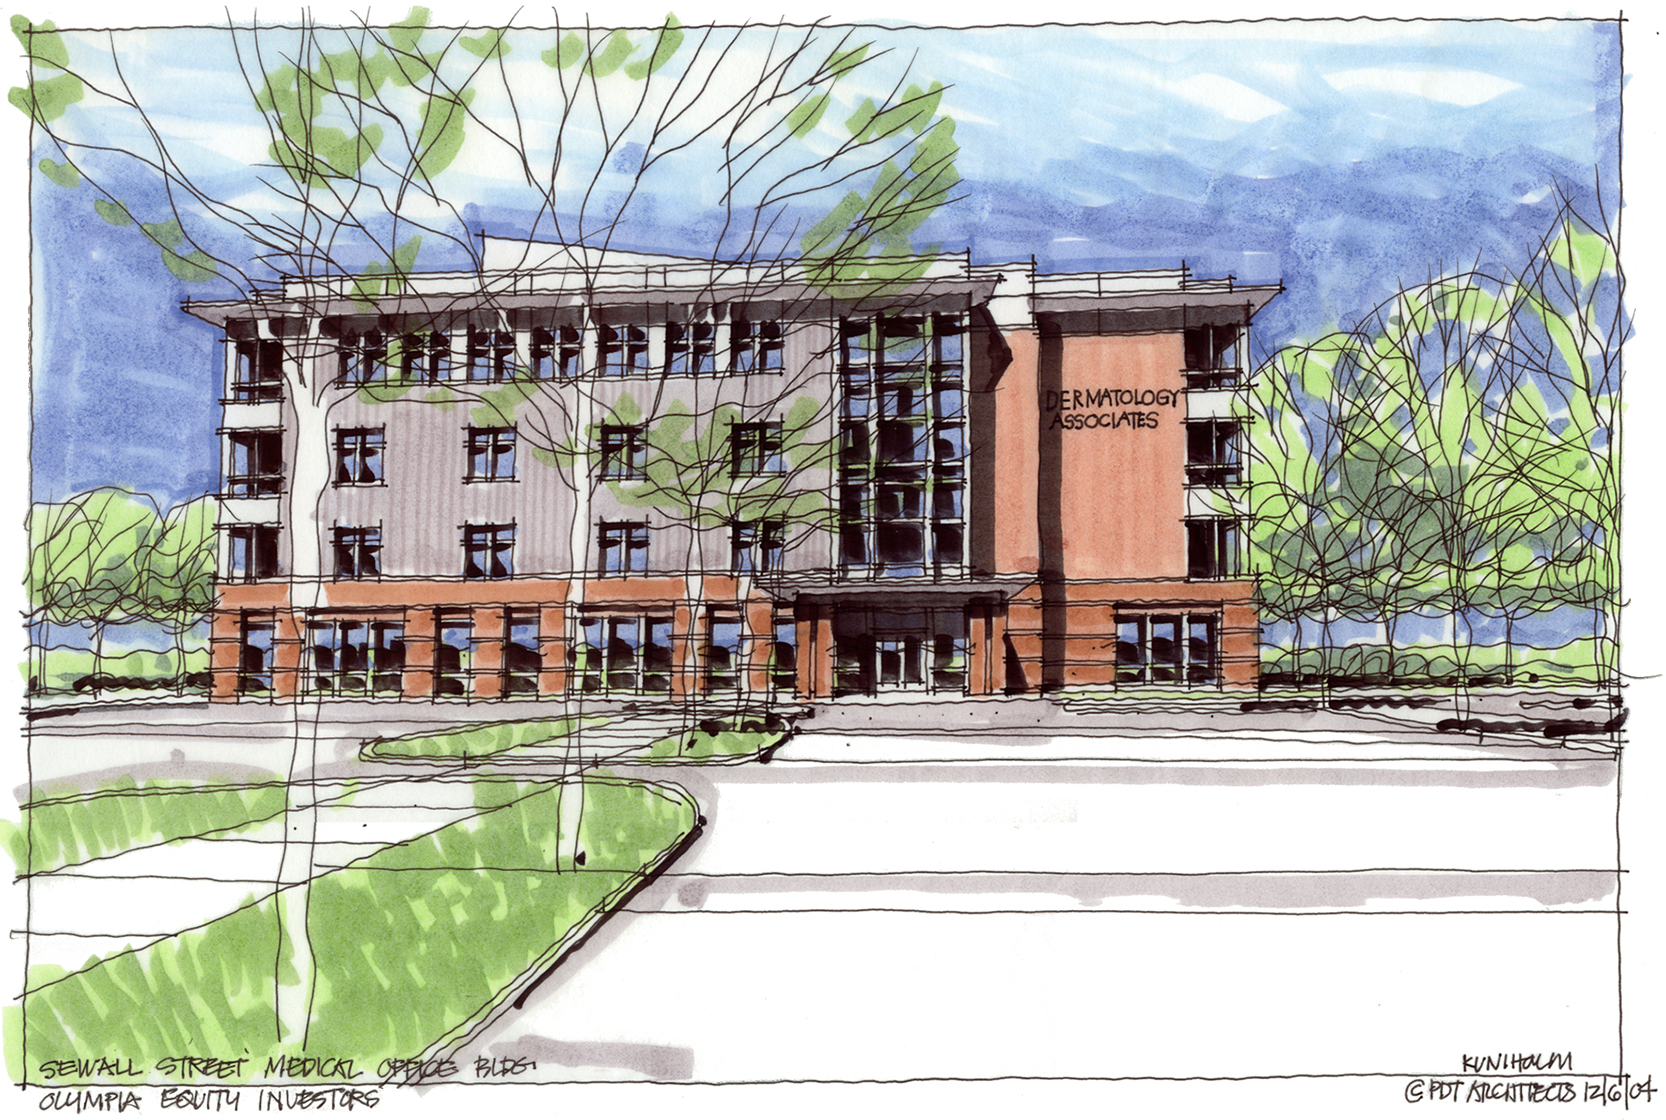 PDT uses hand-drawn sketches to communicate the design intent to the client. This one is by Principal Alan Kuniholm.